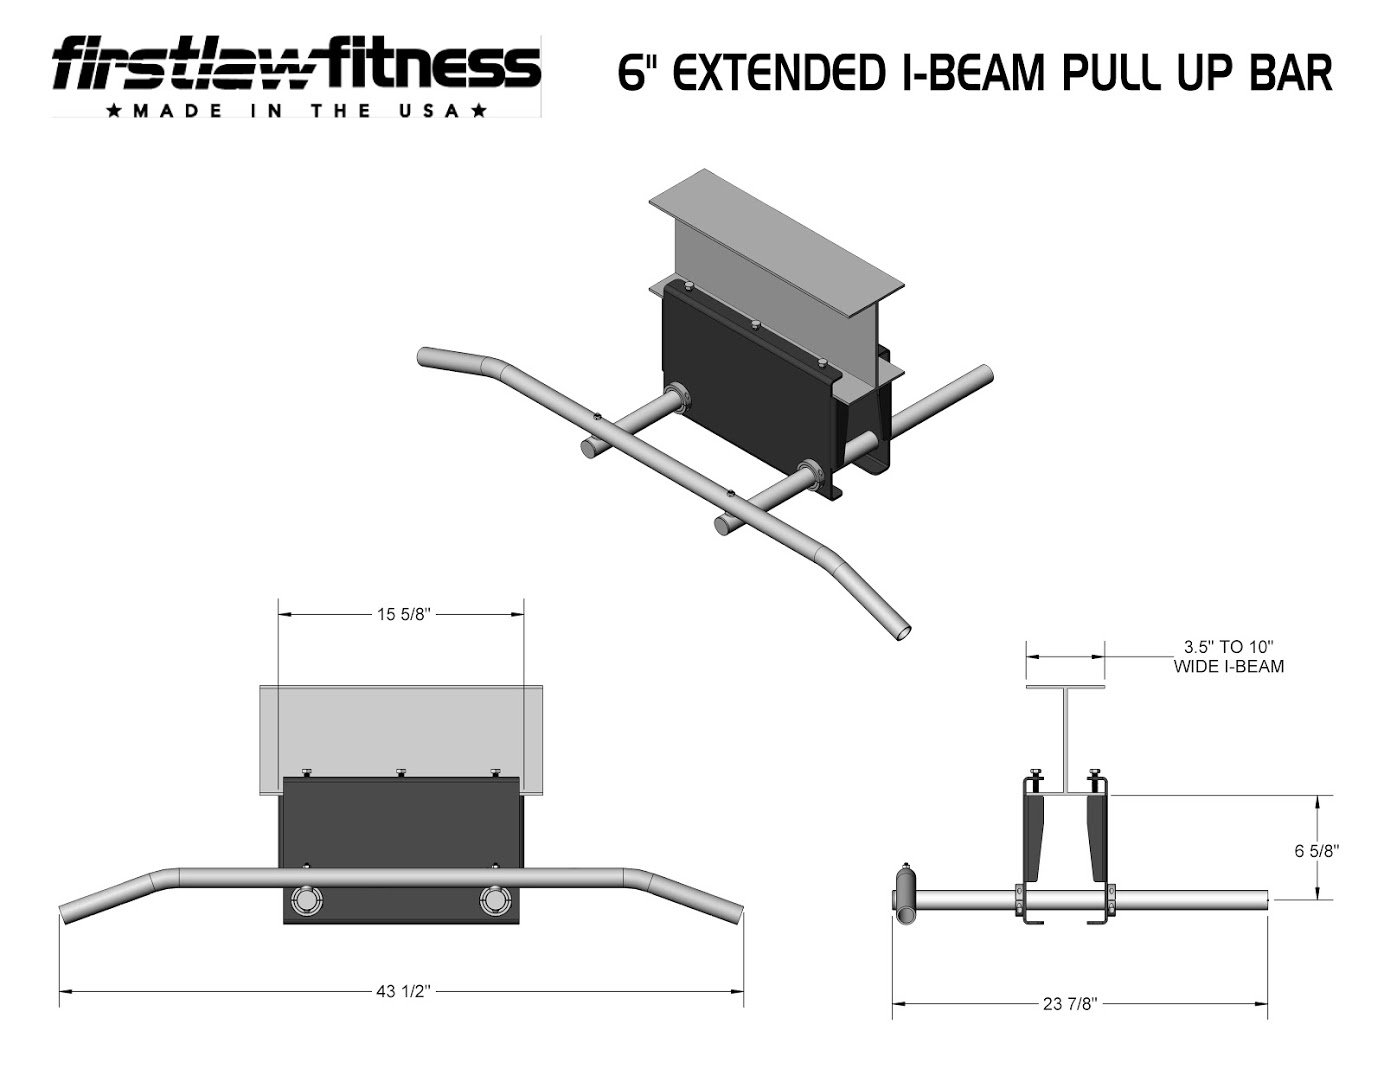 Firstlaw Fitness - 600 LBS Weight Limit - 6'' Extended I-Beam Pull Up Bar - Long Bar with Bent Ends - Durable Rubber Grips - Red Label - Made in the USA! by Firstlaw Fitness (Image #3)